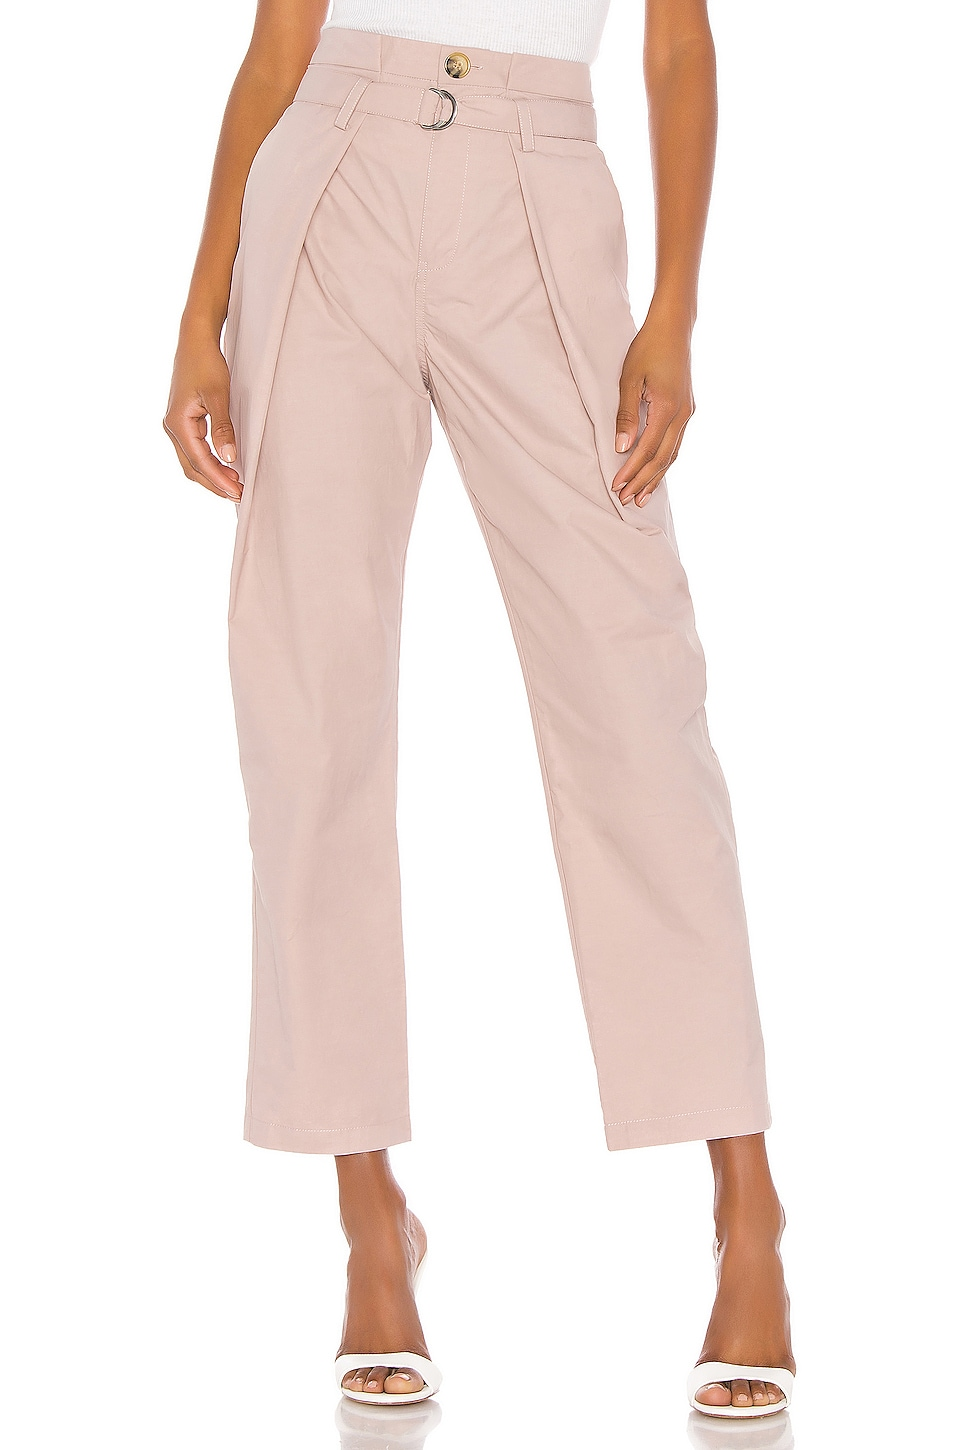 L'Academie The Connie Pant in Mauve